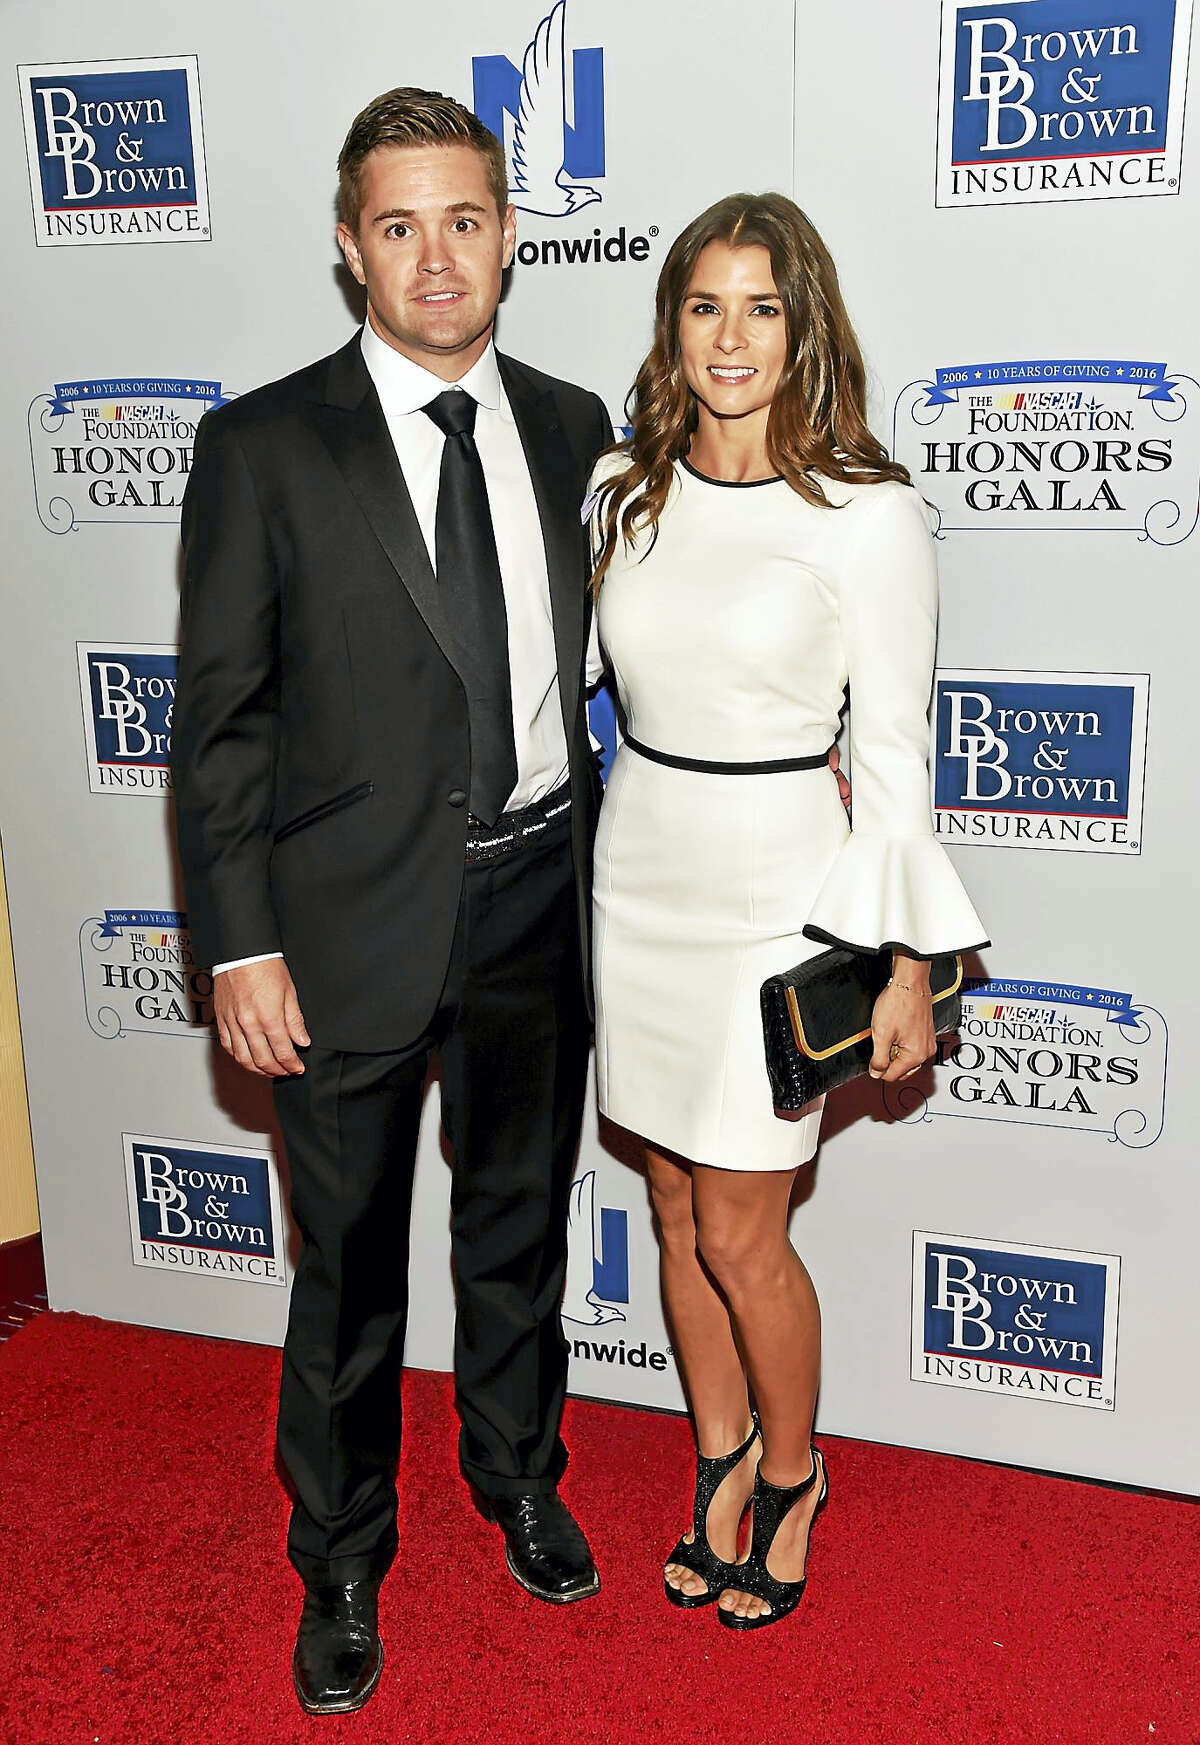 NASCAR drivers Ricky Stenhouse Jr. and Danica Patrick attend a 2016 gala in New York.